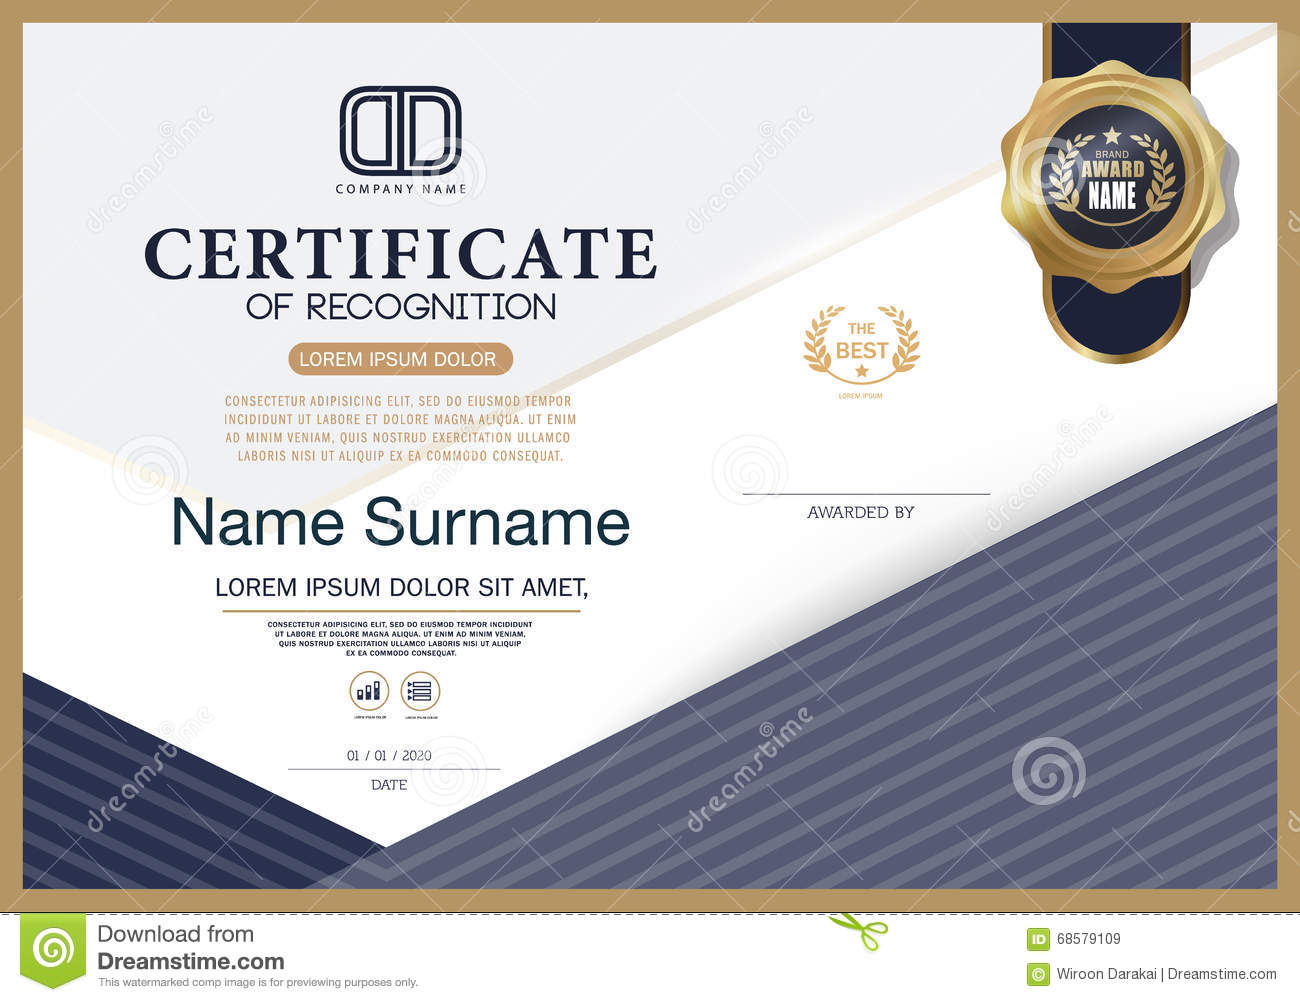 Certificate Of Recognition Template - mandegar.info